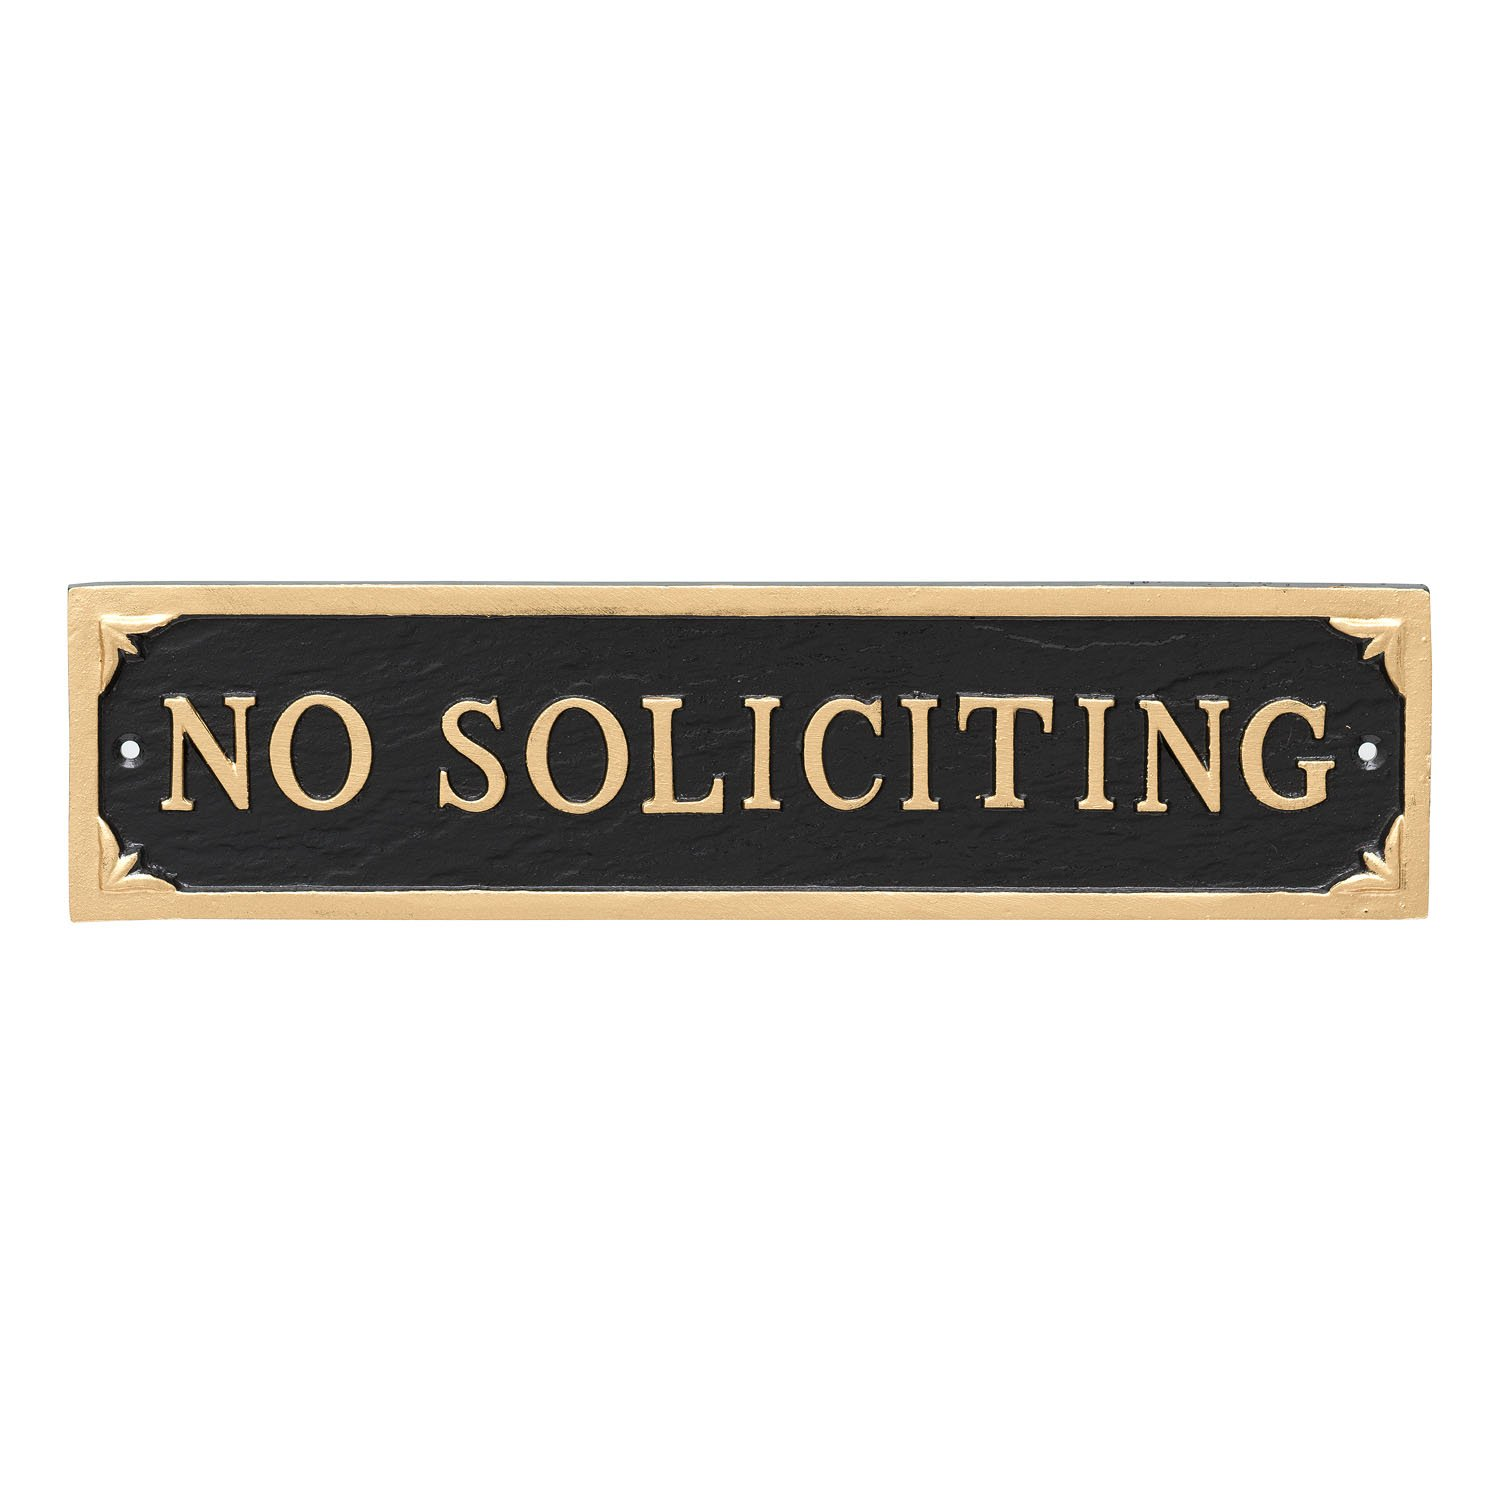 Montague Metal Products No Soliciting Statement Plaque Sign, Black with Gold Lettering, 11'' x 2.75